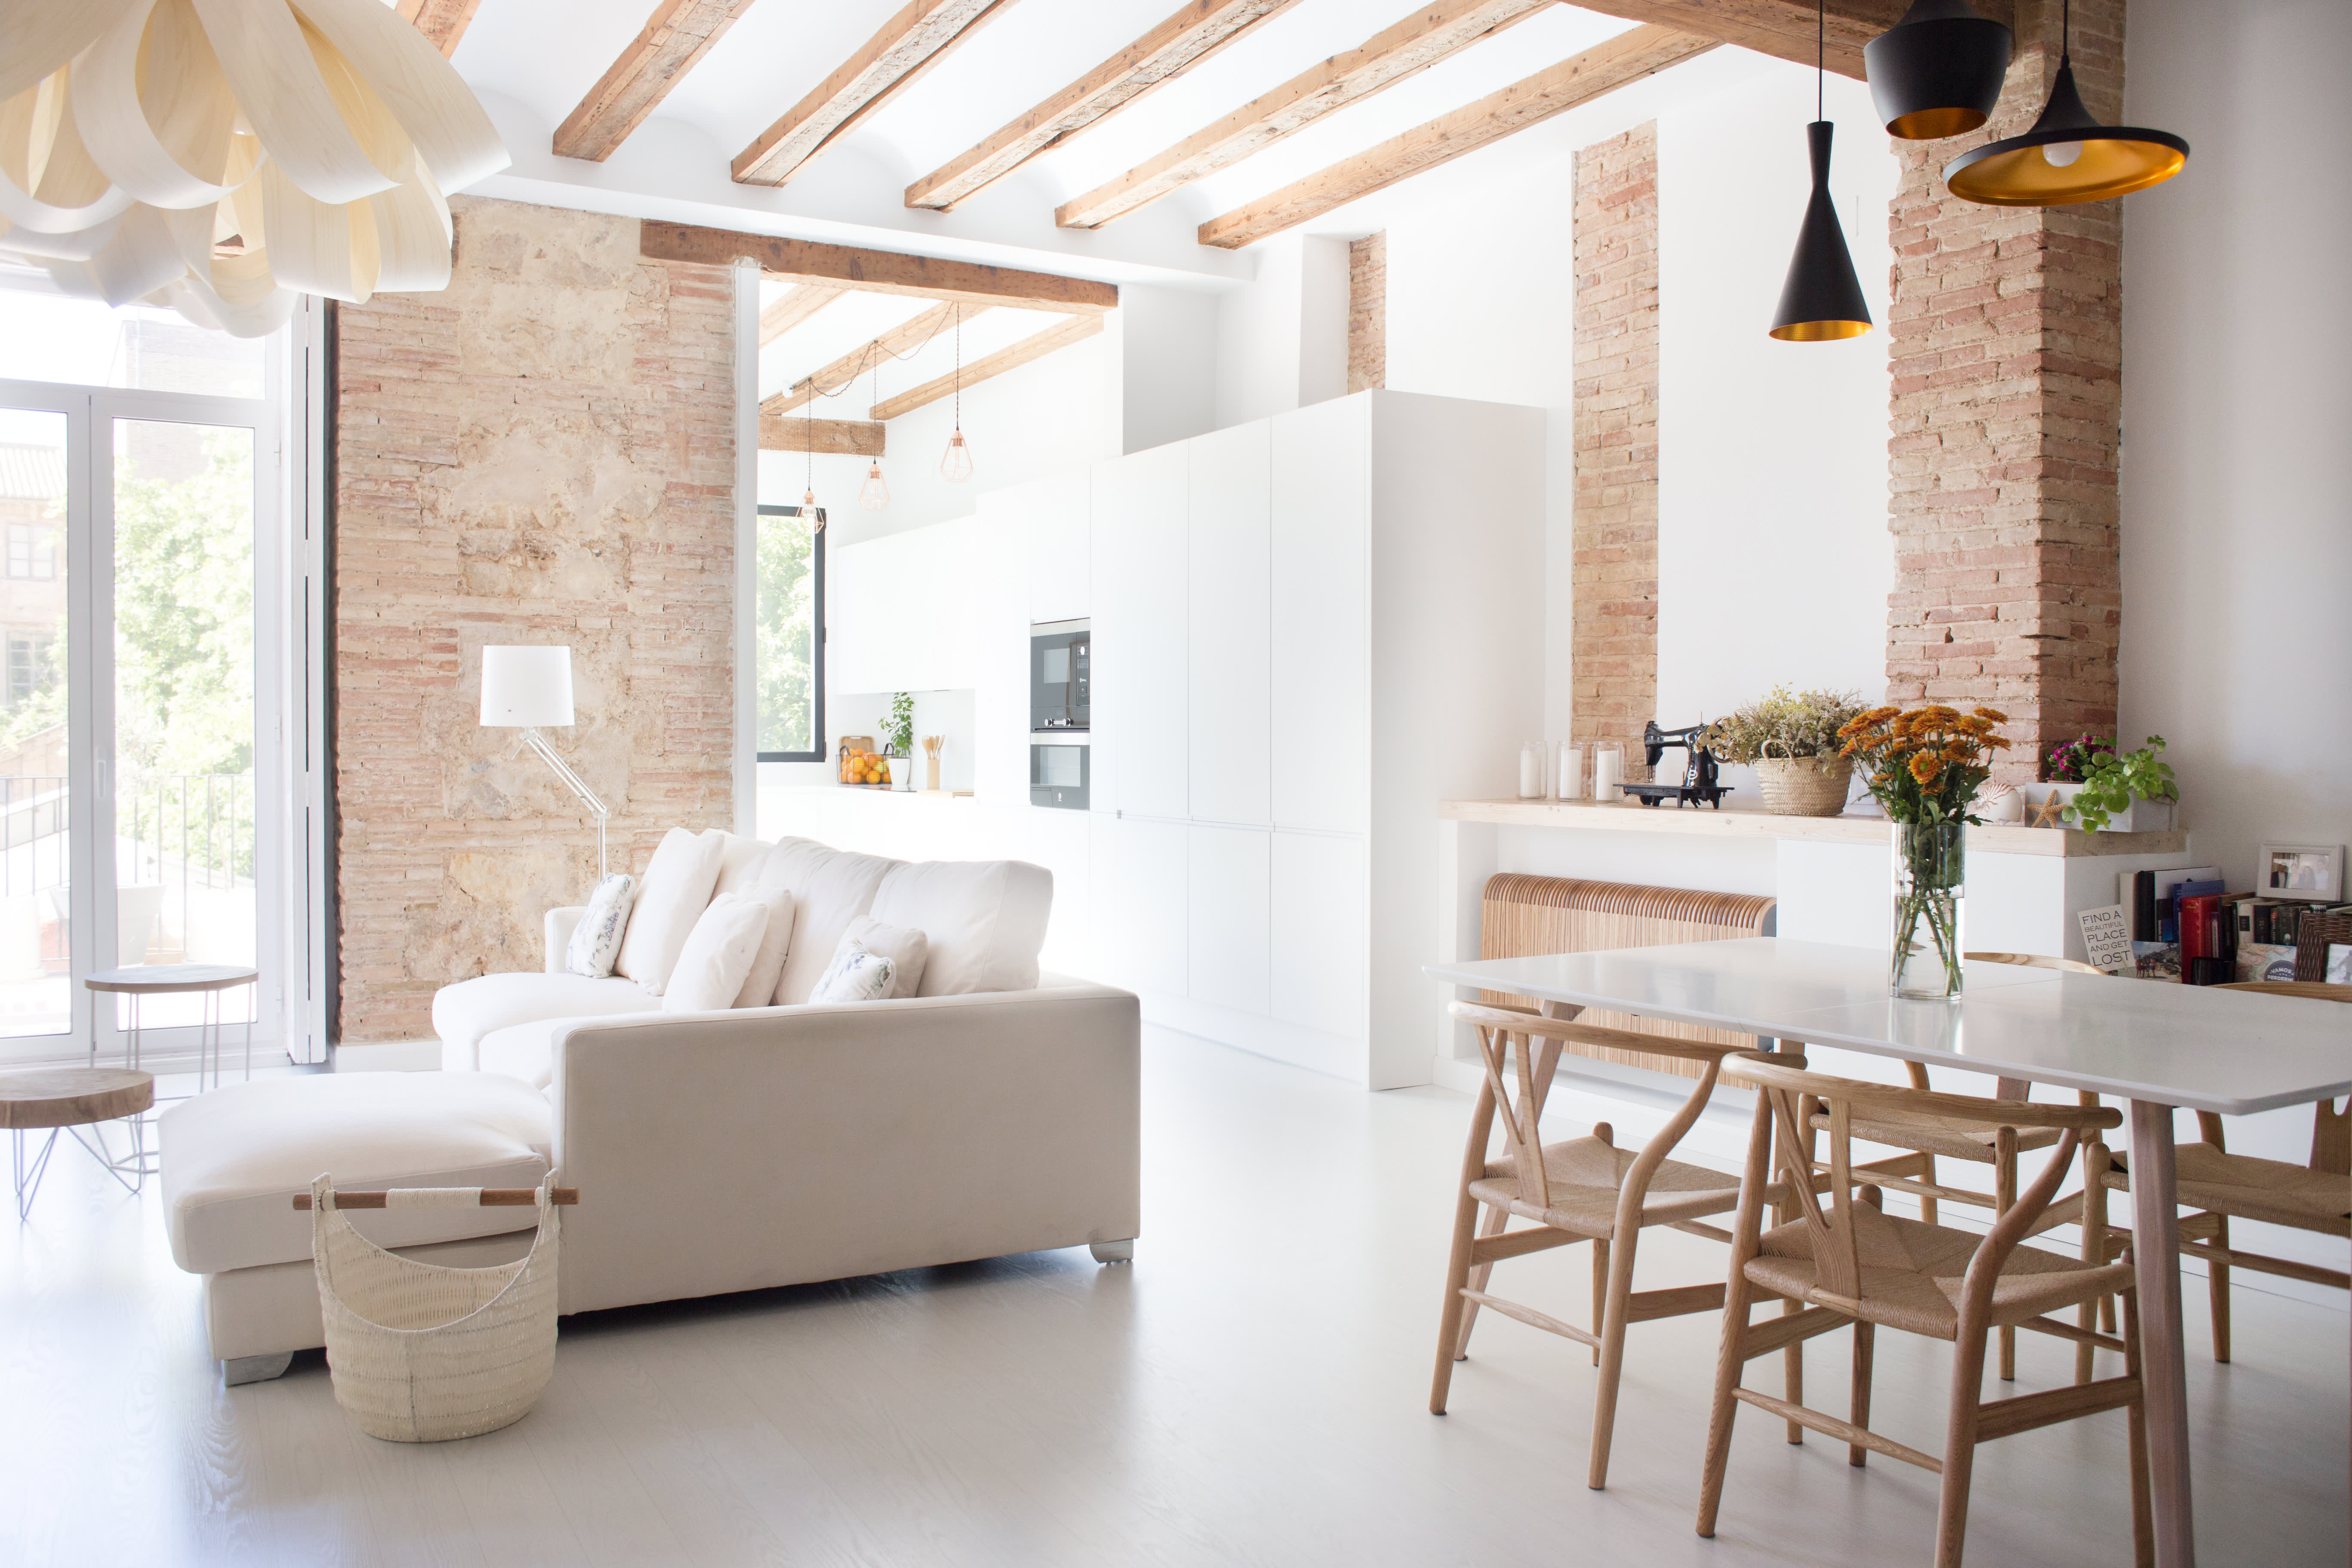 A Renovated Spanish Home With Beautiful Tiled Floors